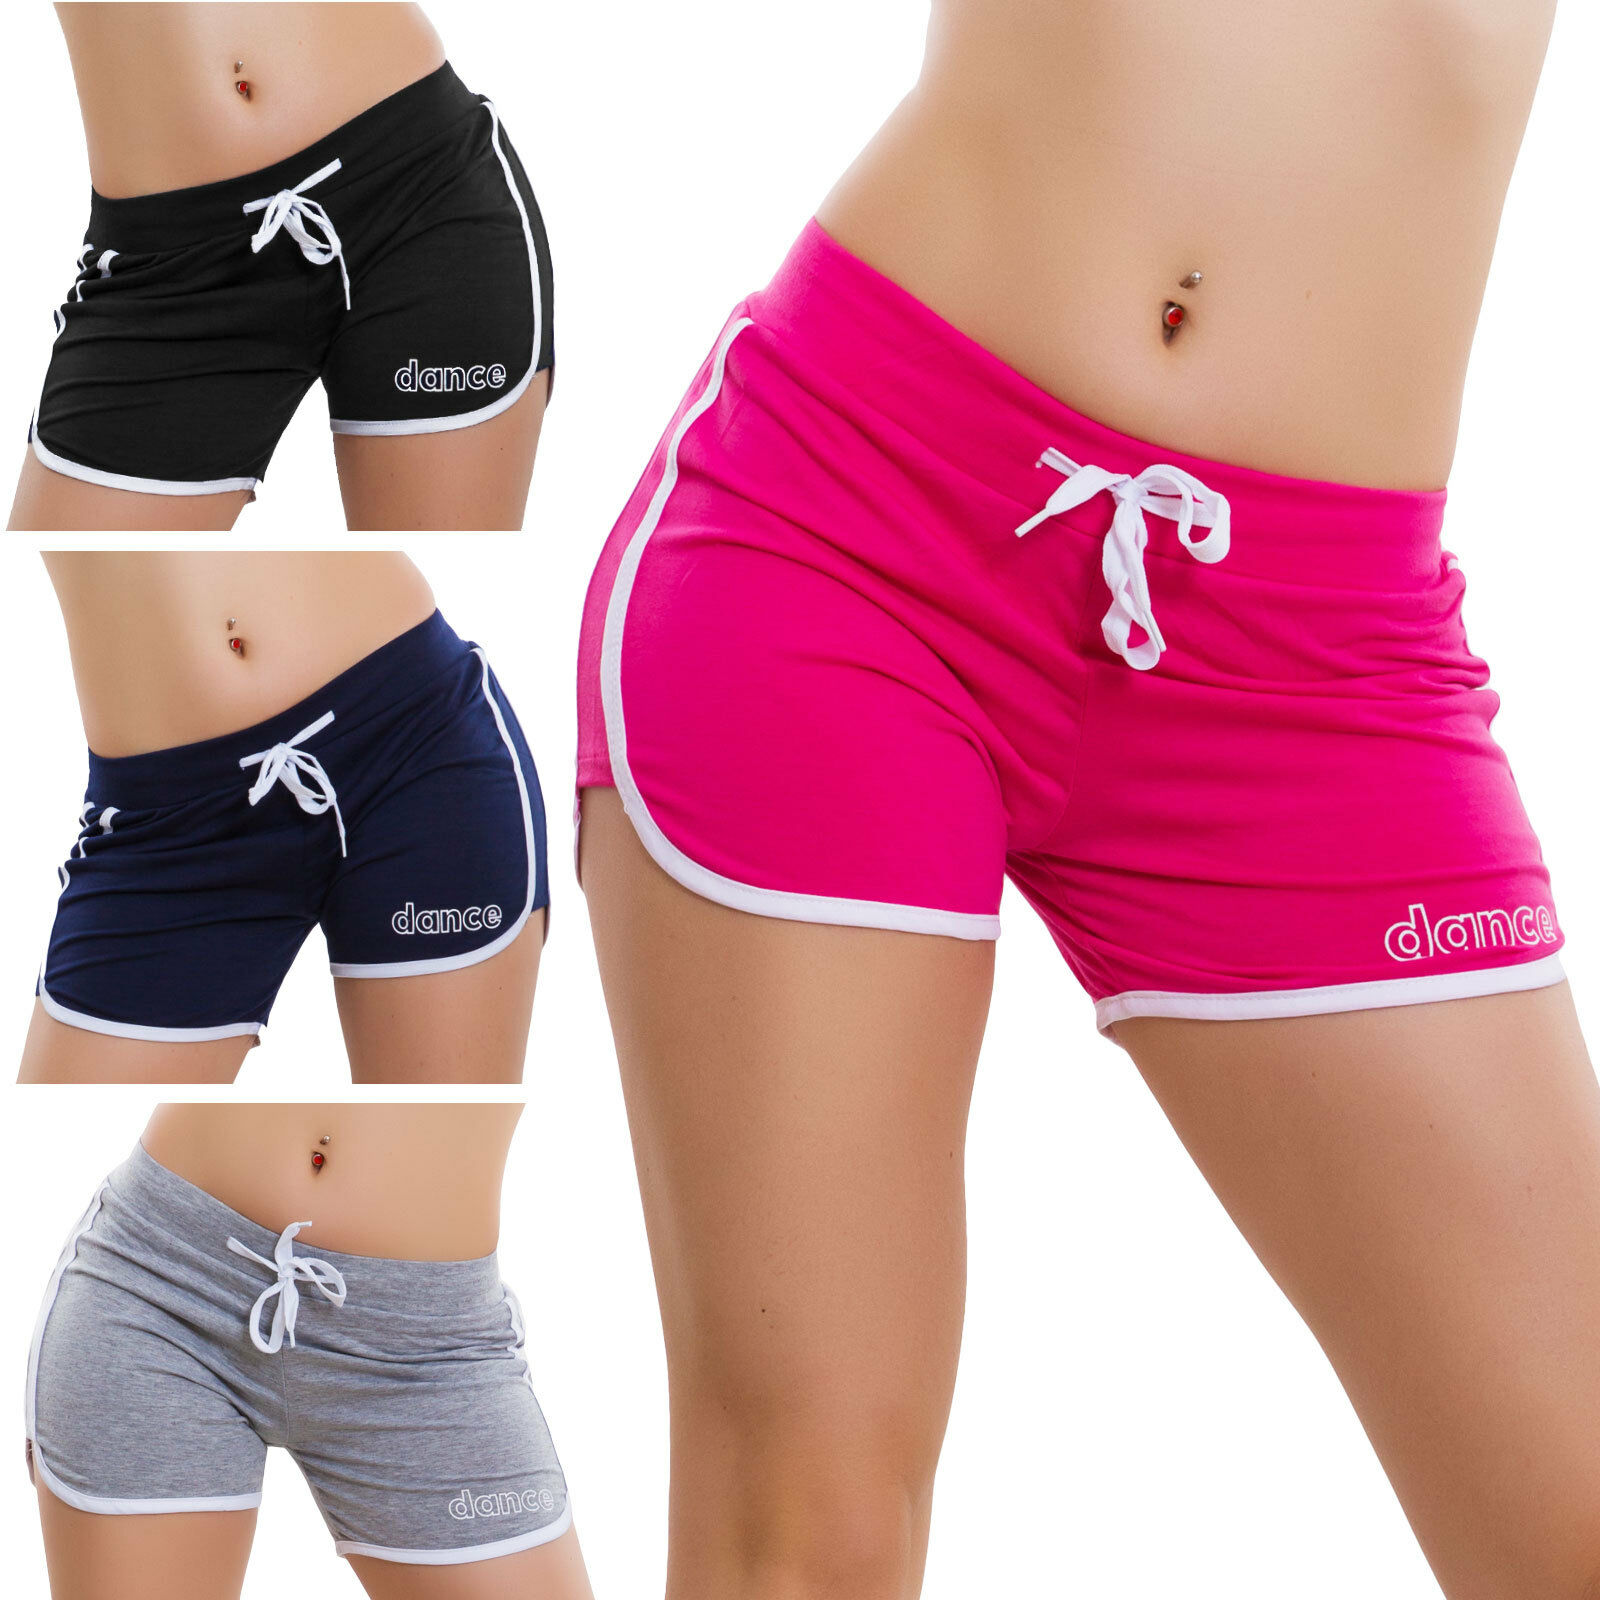 Pantaloncini corti donna shorts hot pants sport leggings fitness cotone R 031